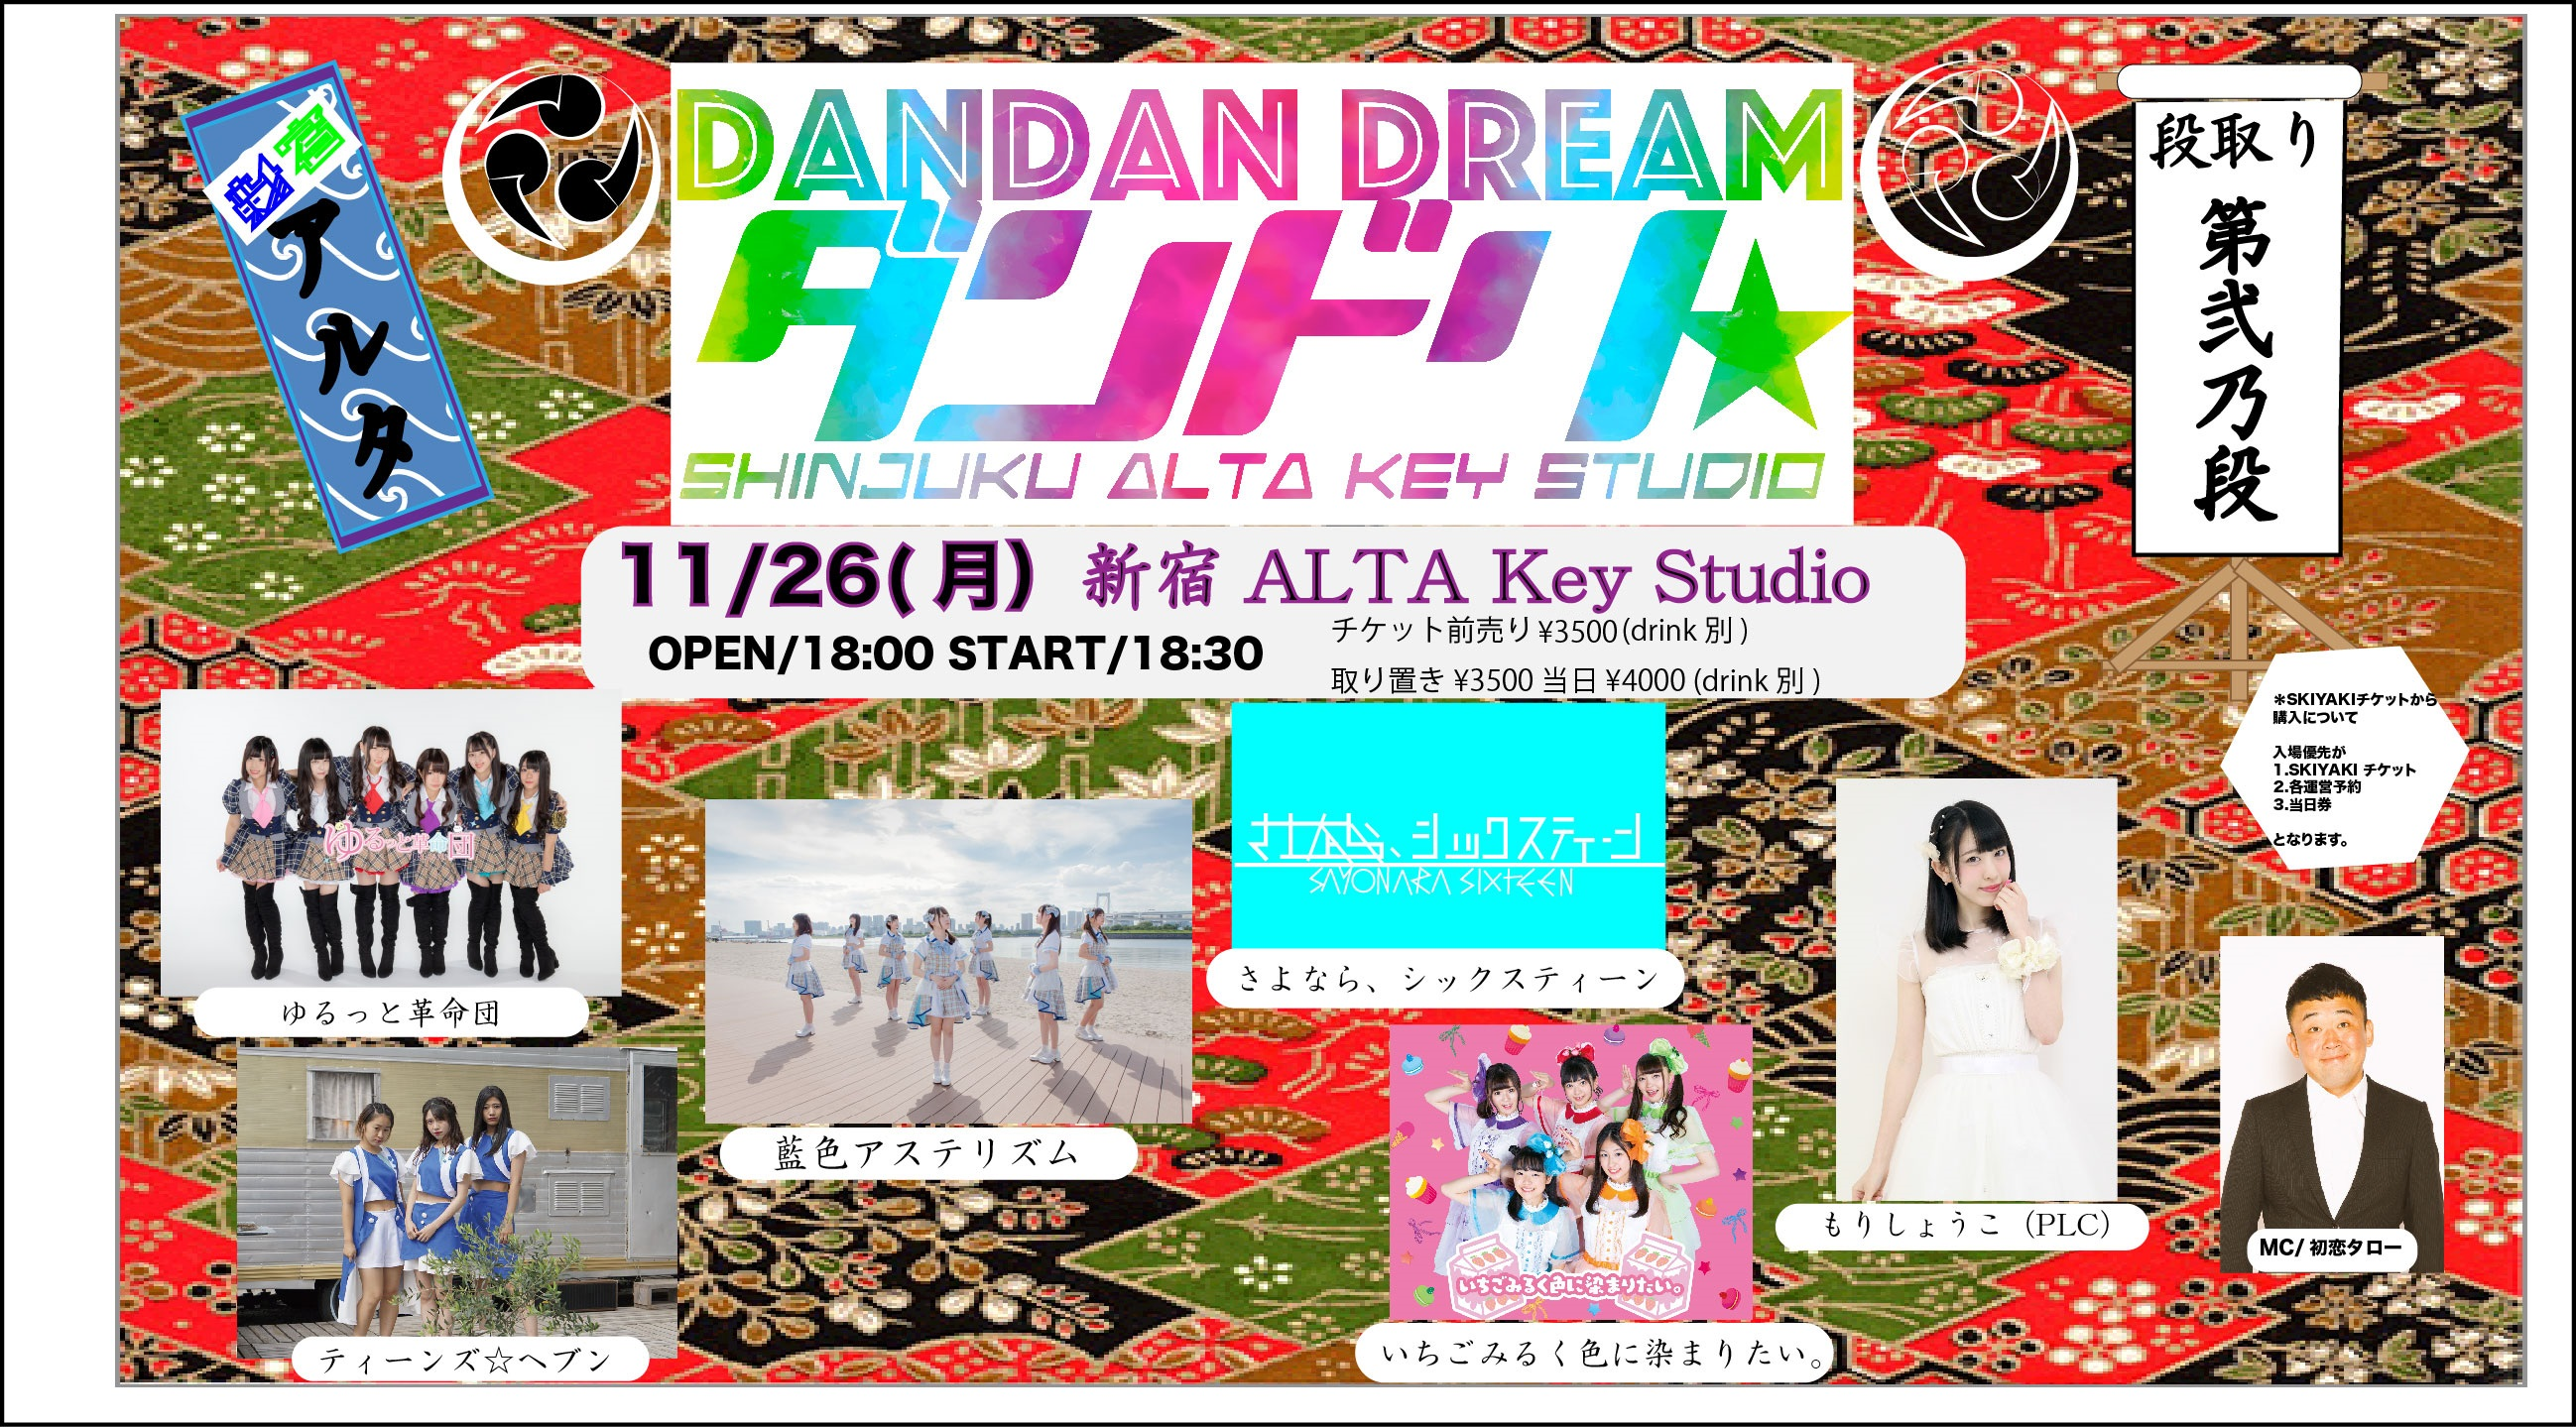 DANDAN DREAM vol.2